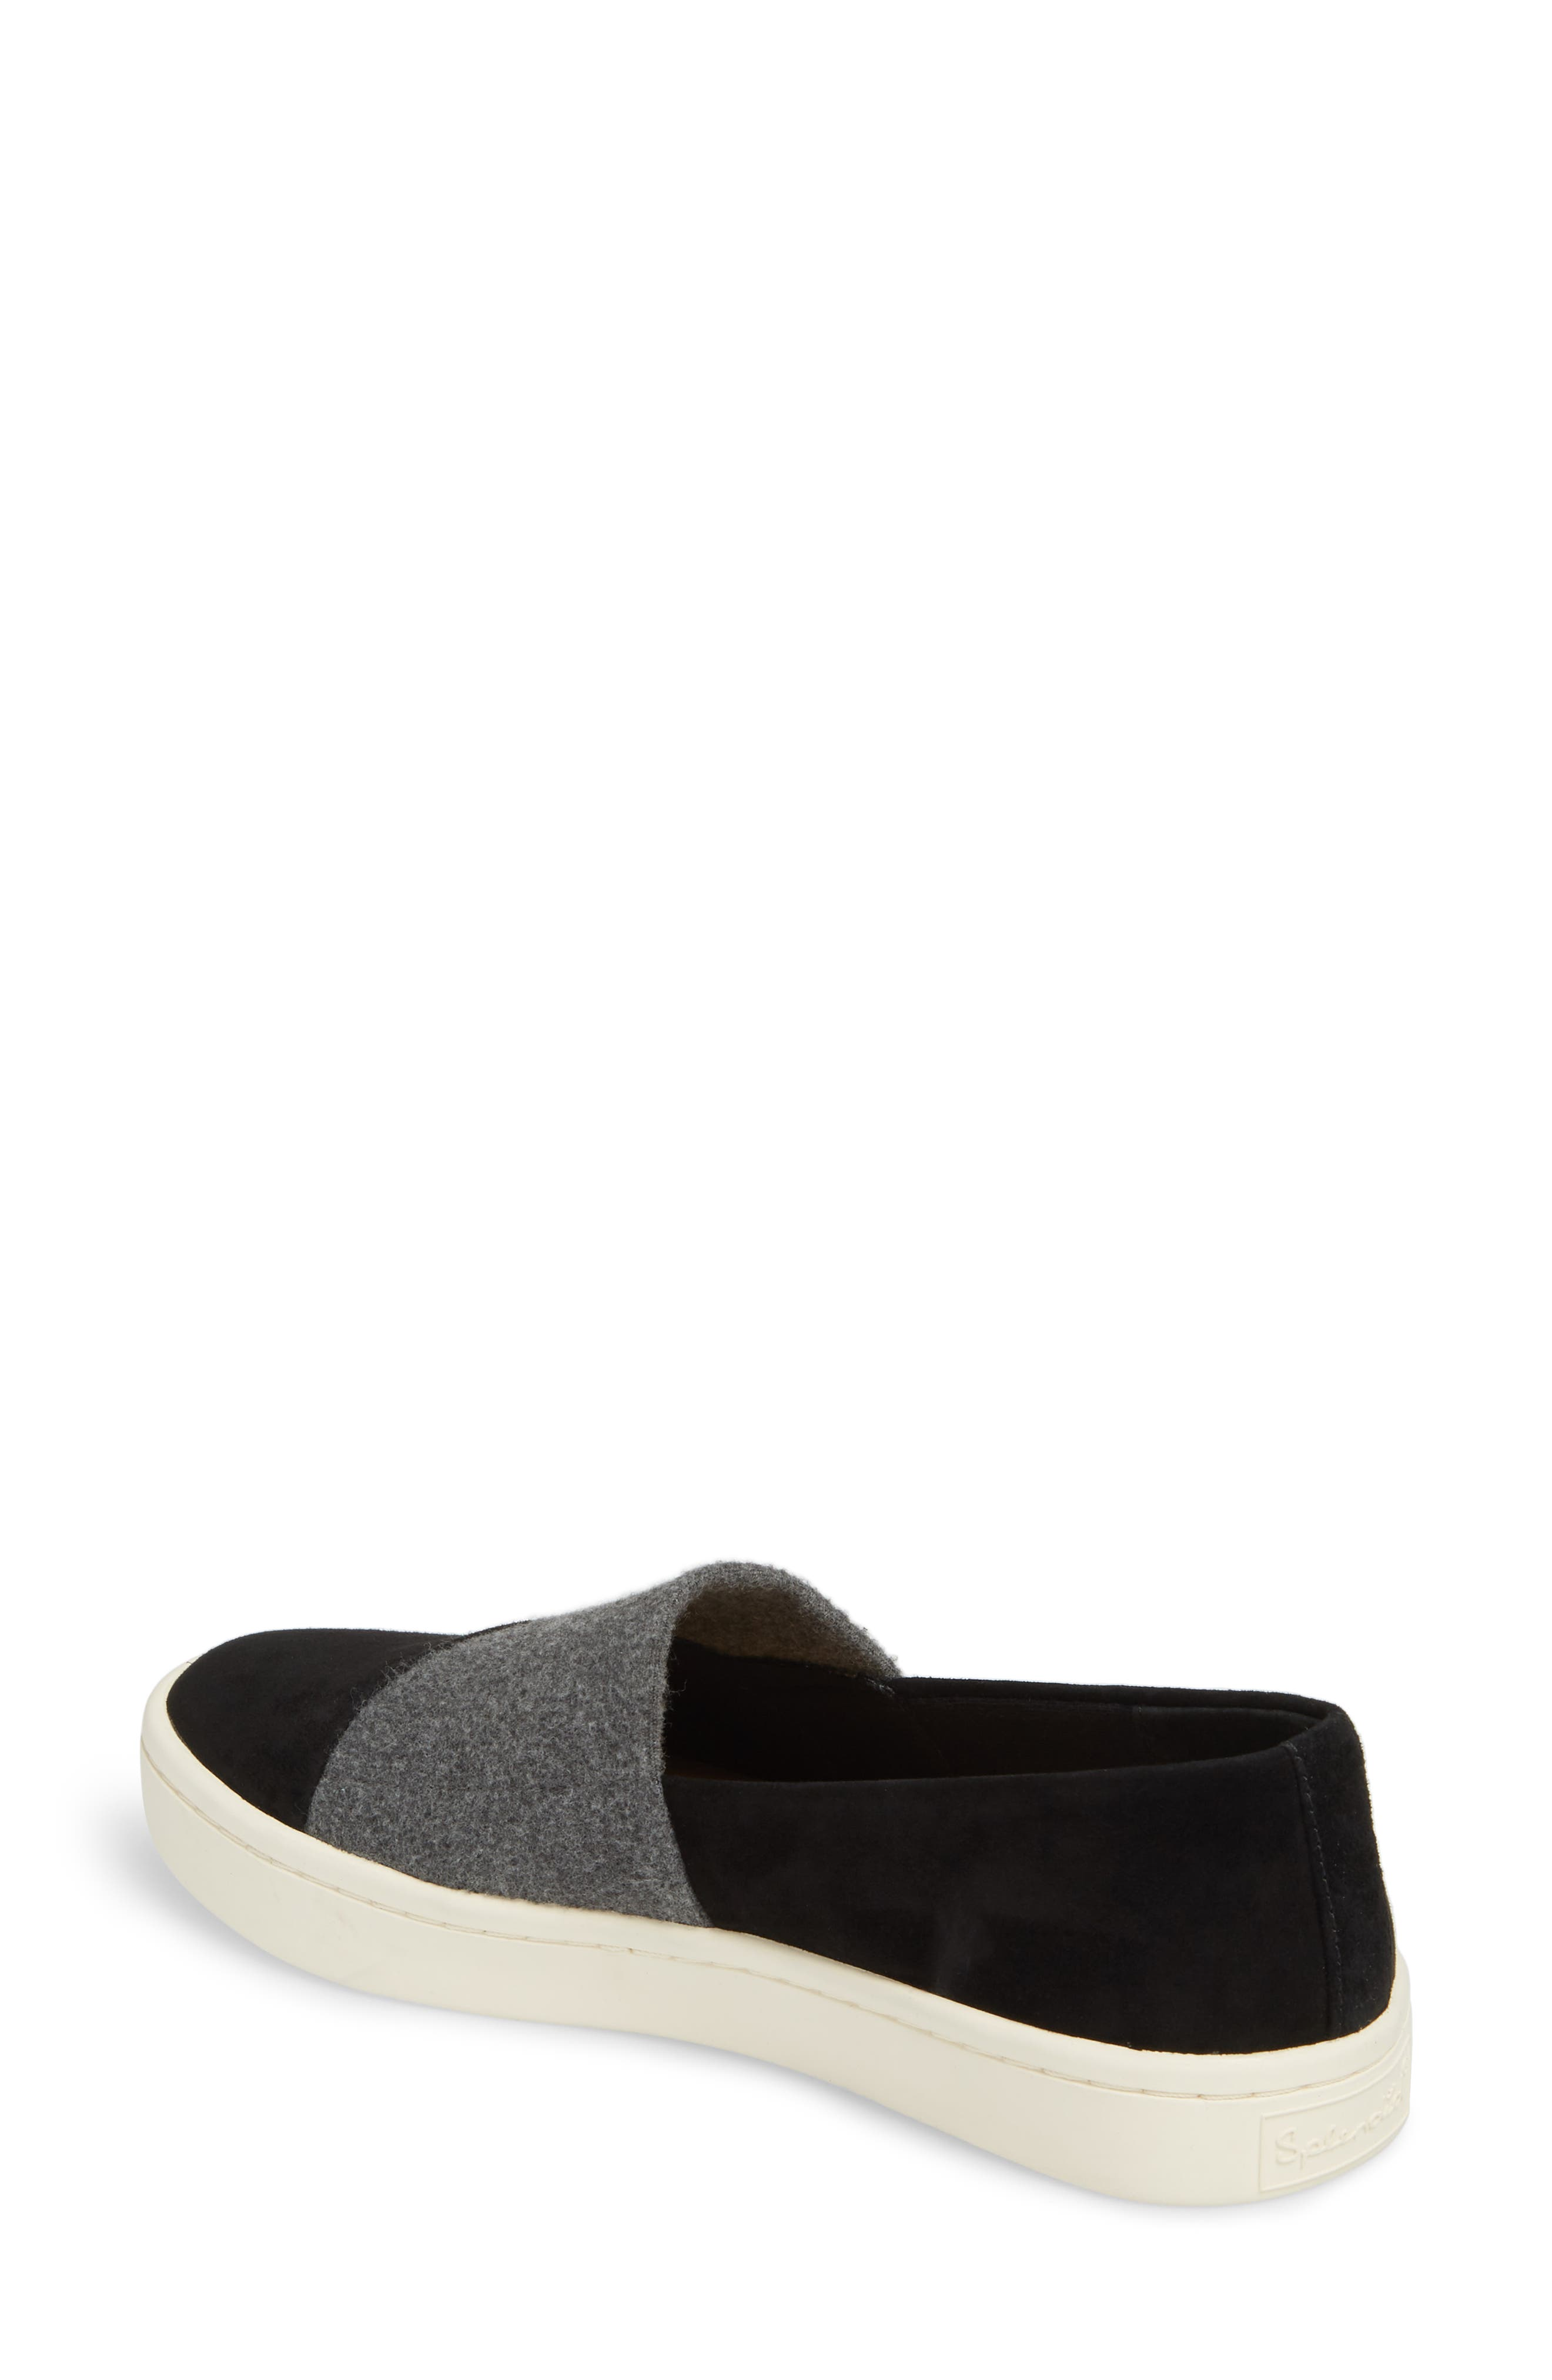 Nouvel Slip-On Sneaker,                             Alternate thumbnail 2, color,                             Black/ Grey Suede